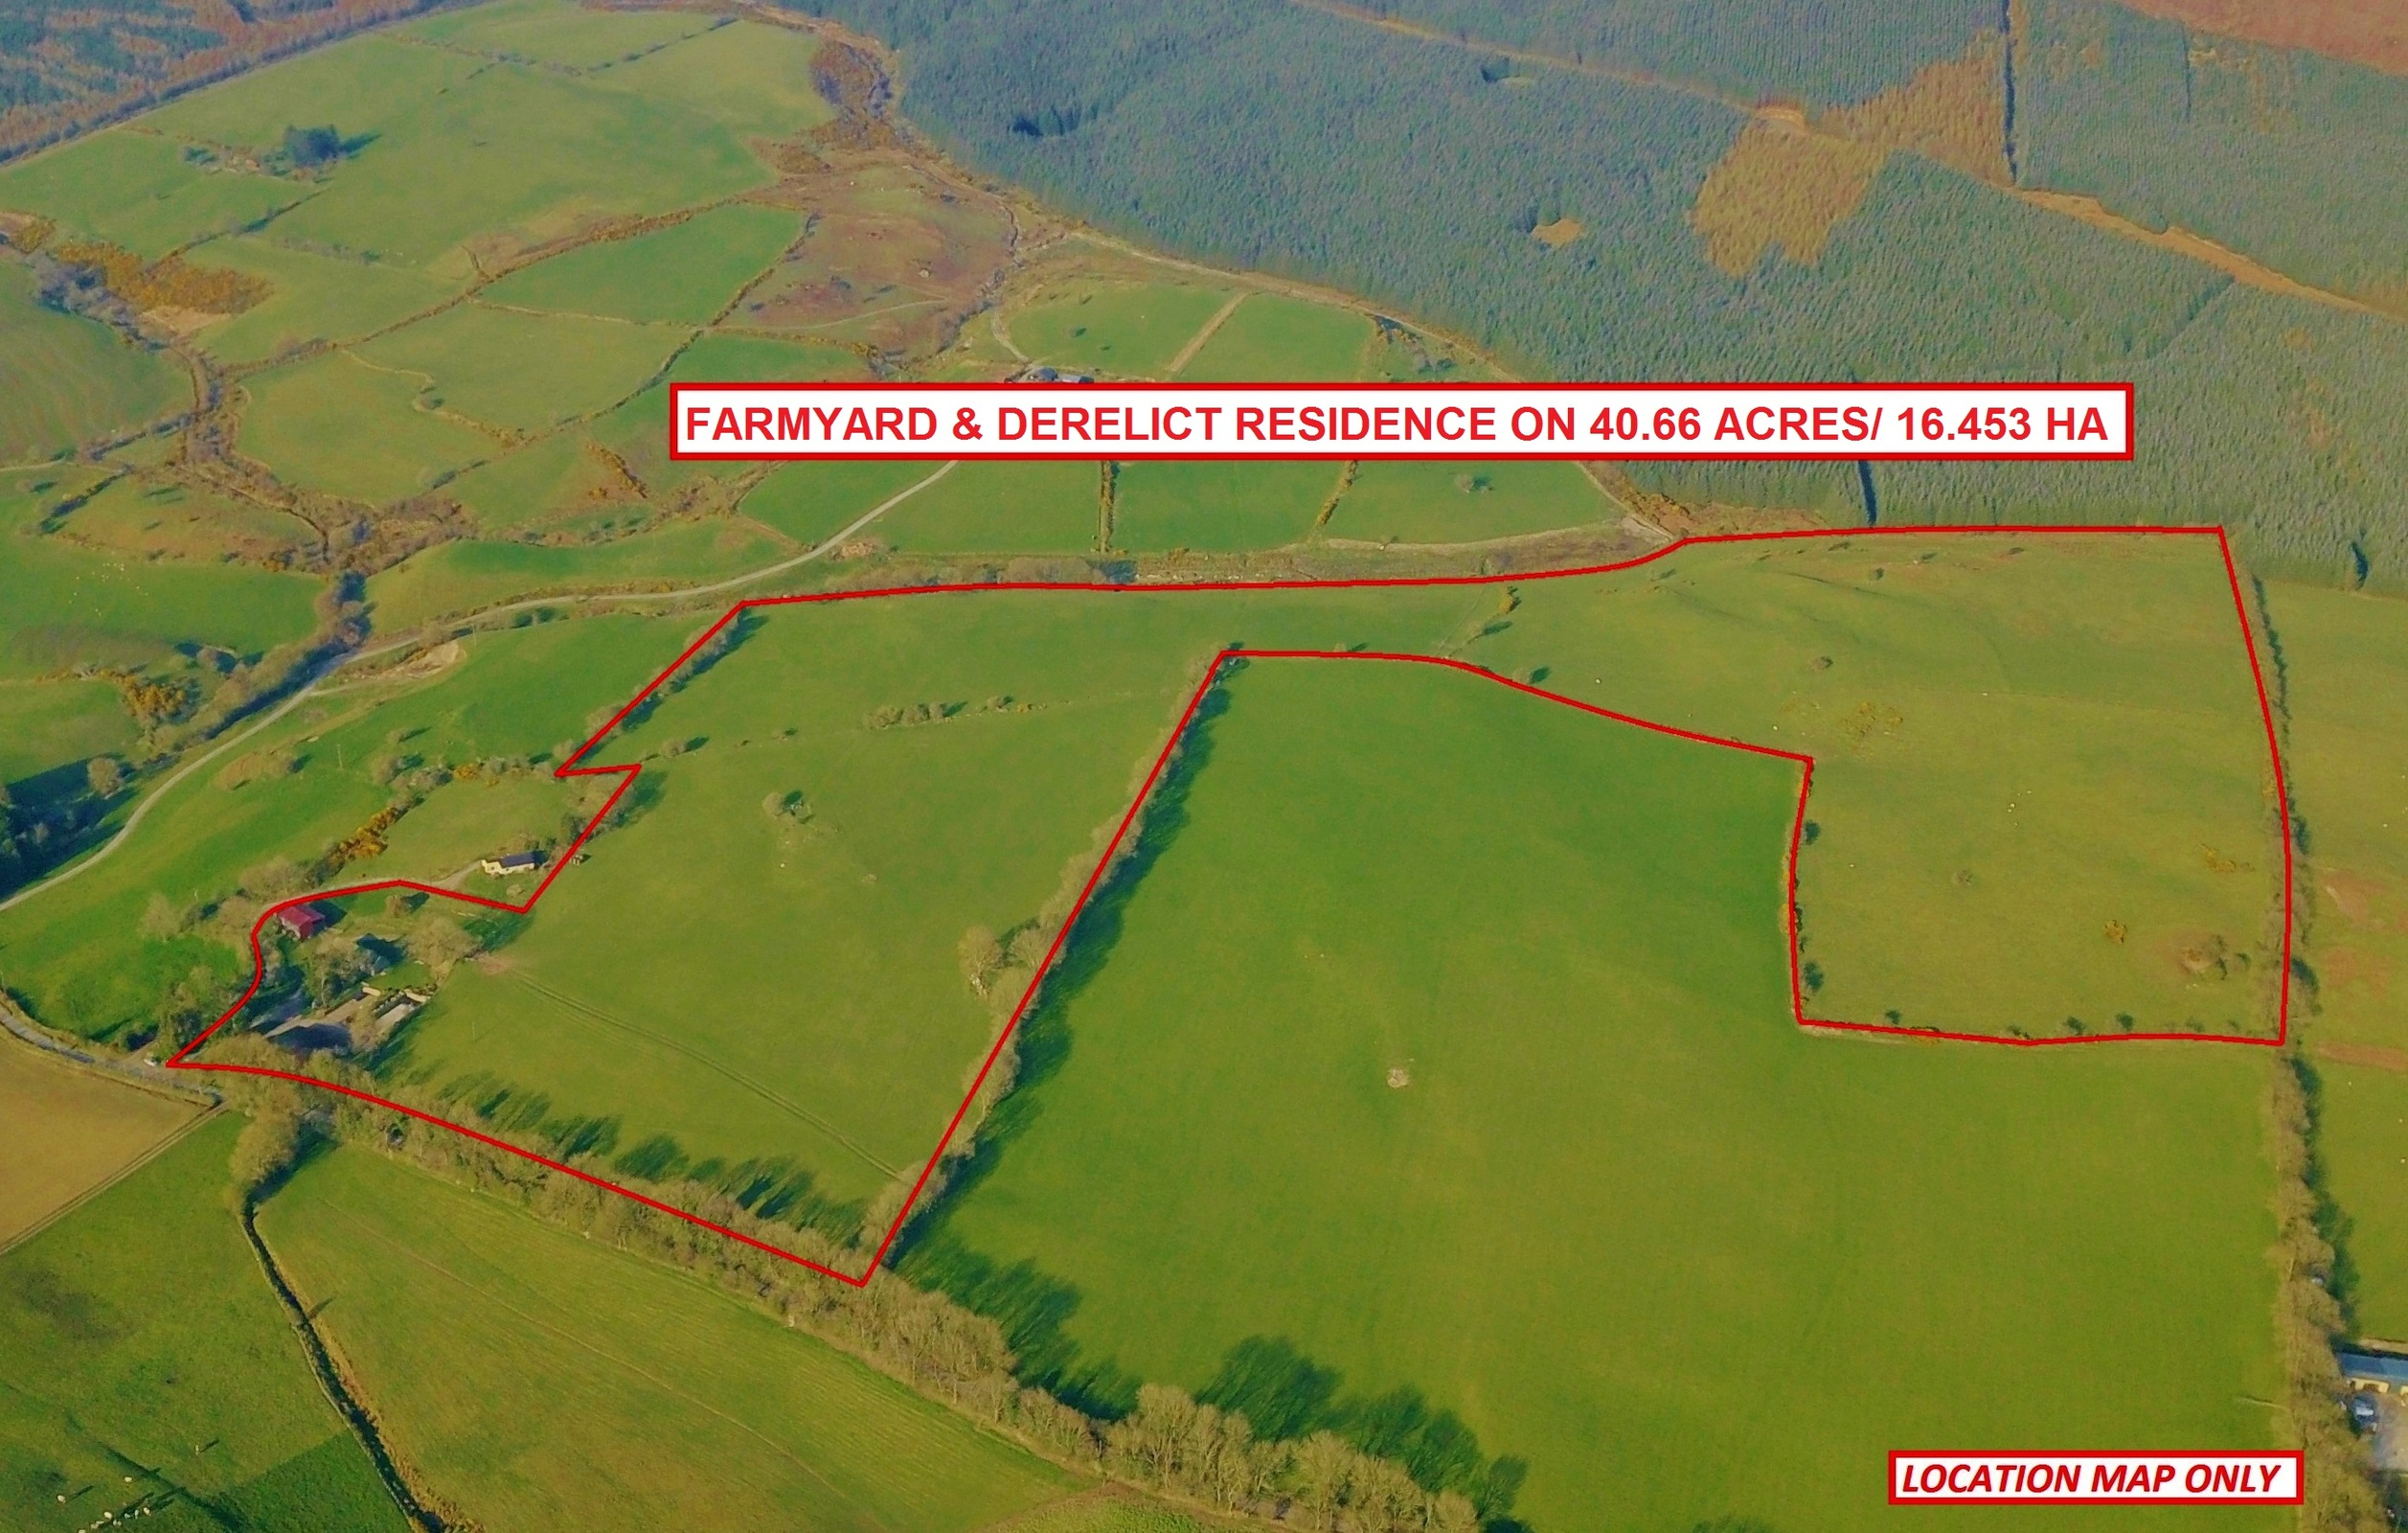 Derelict Residence & Farmyard C. 59.5 Acres Available In 1 Or 2 Lots, Kilbaylet, Donard, Co. Wic